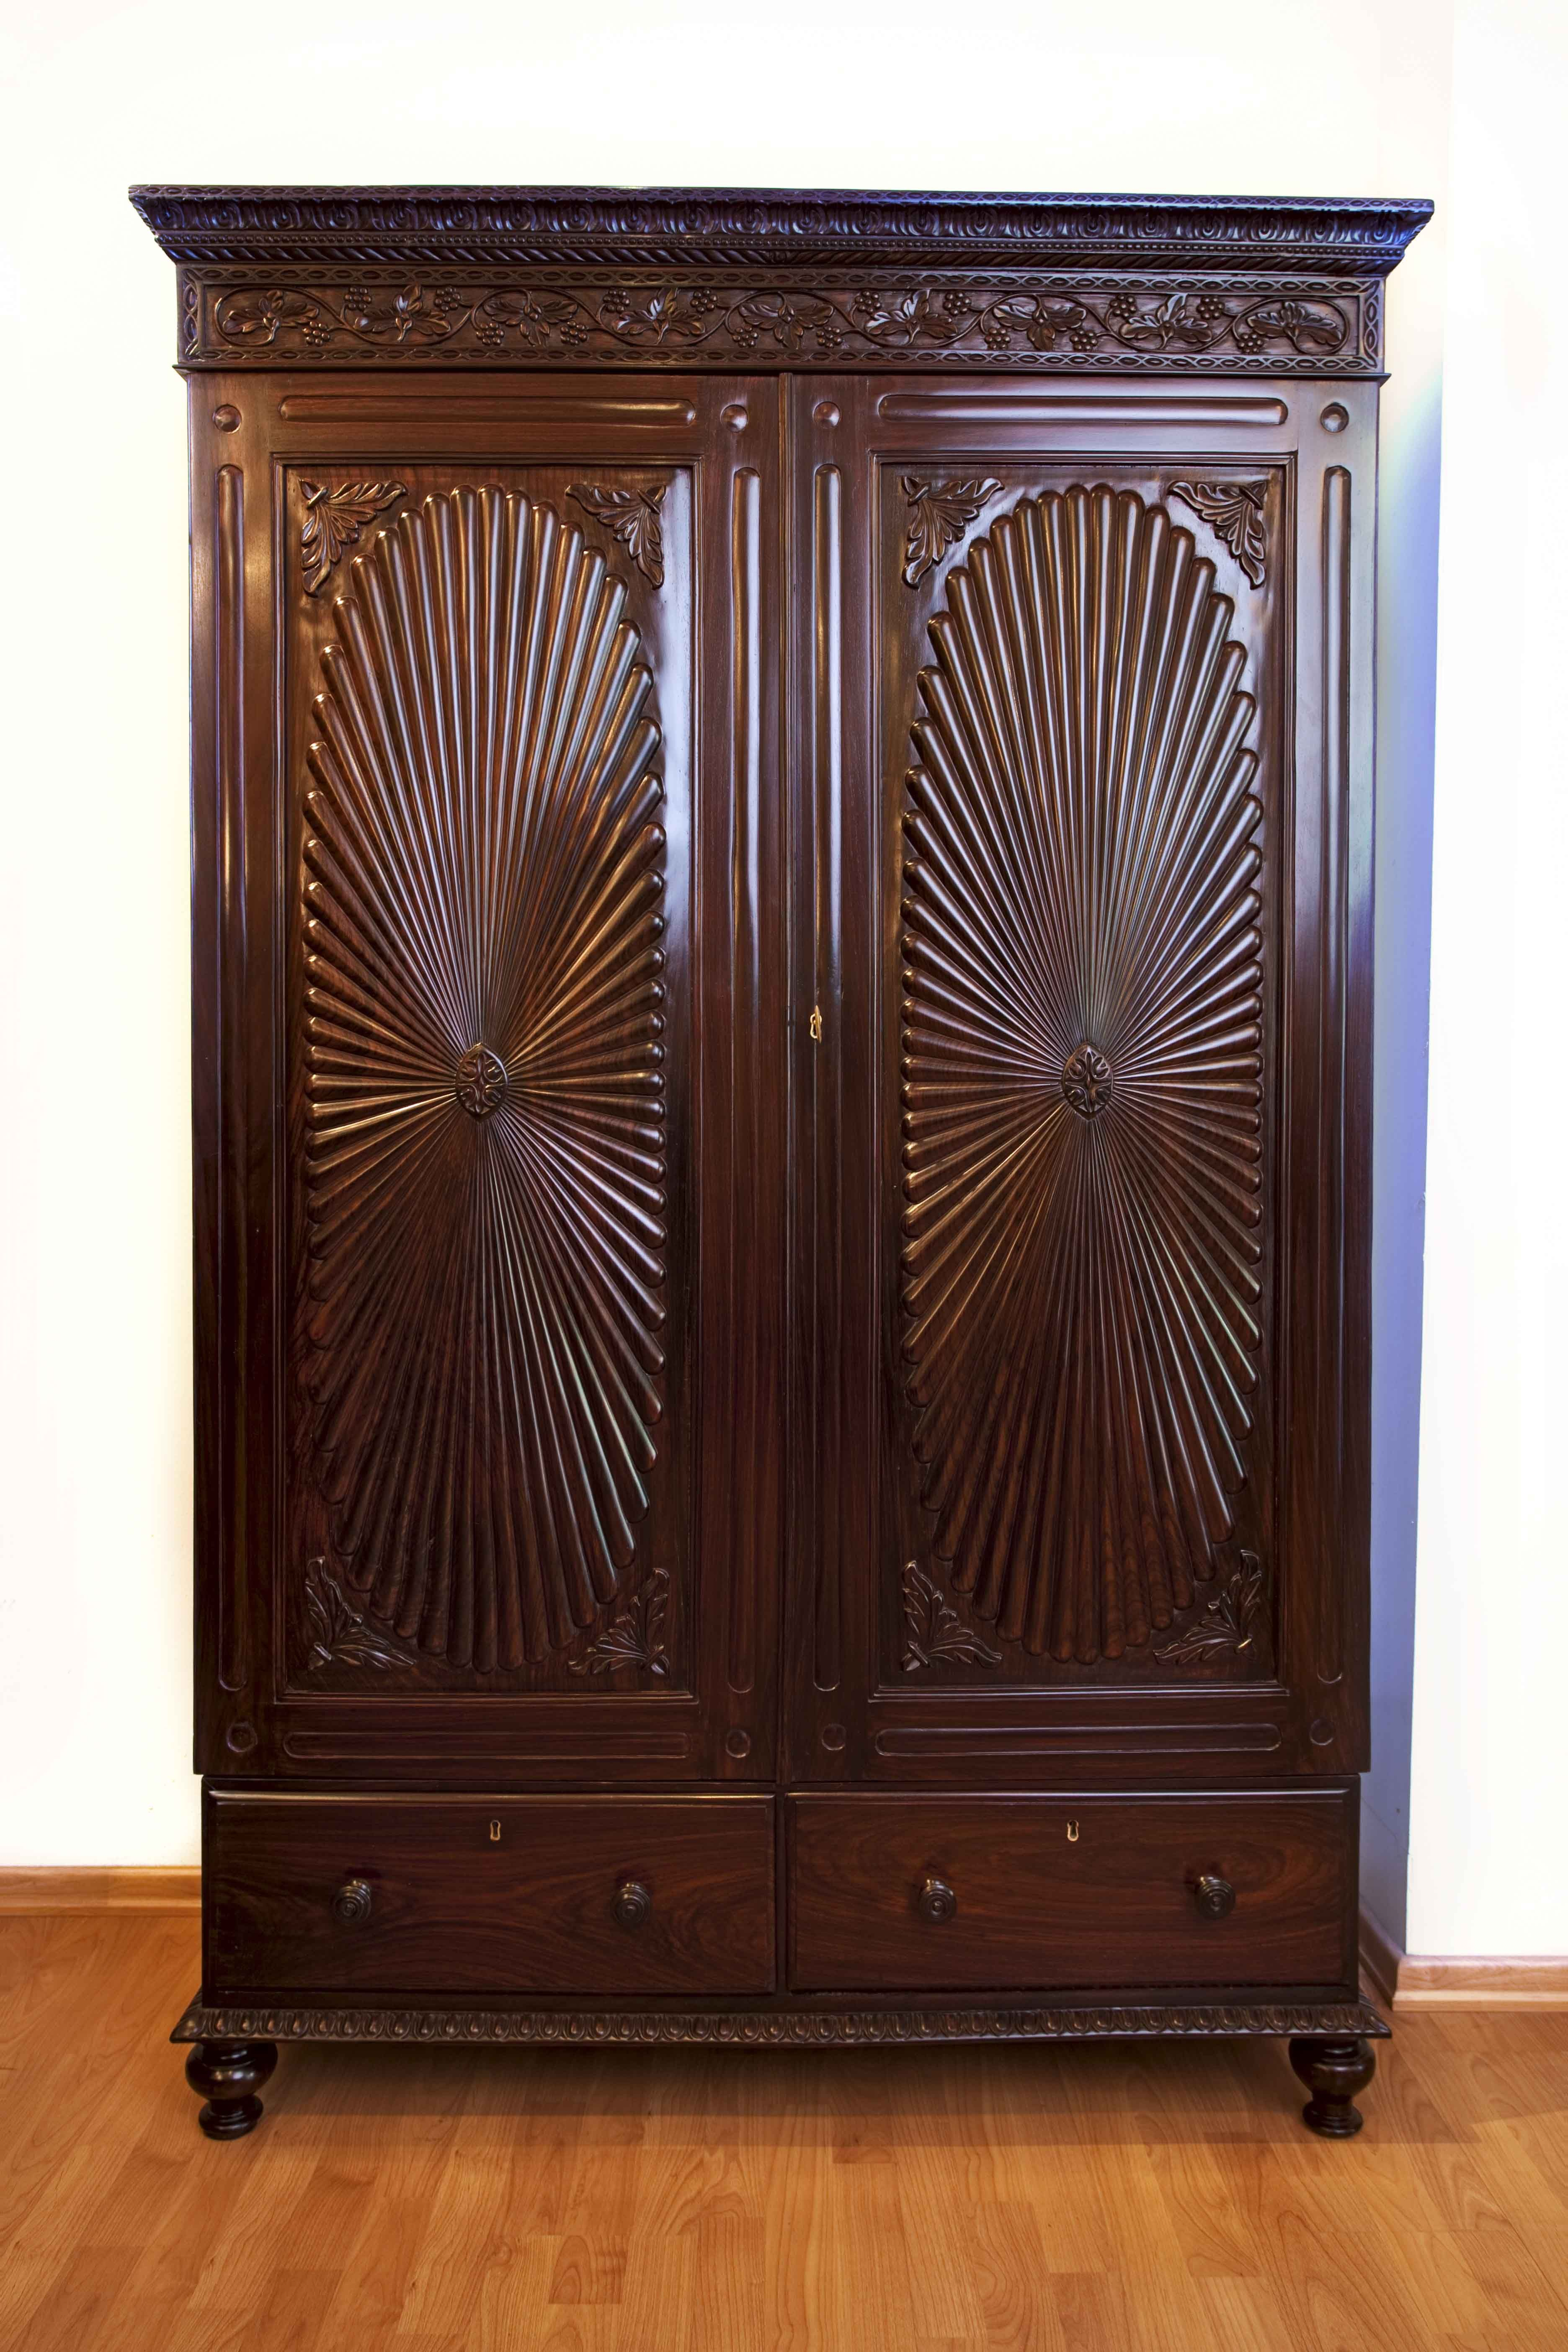 BritishColonial A British Colonial Rosewood Cupboard With Fleur De Lys Carving On The